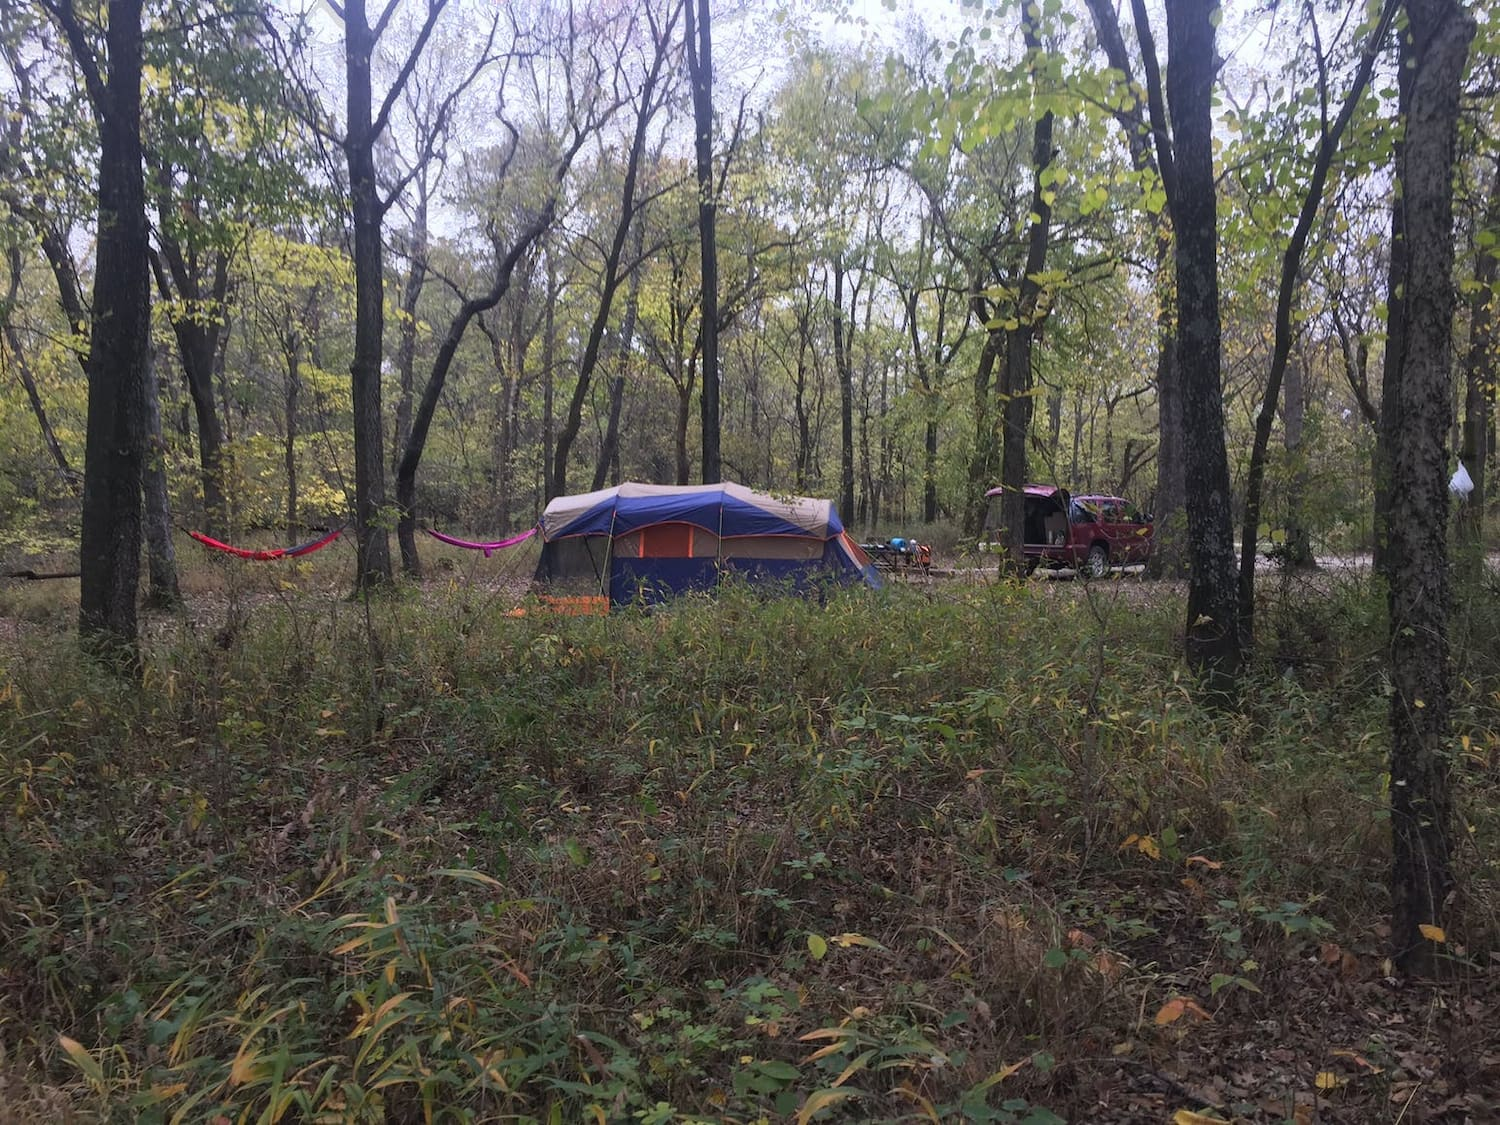 tent and hammocks set up in campsite in the forest